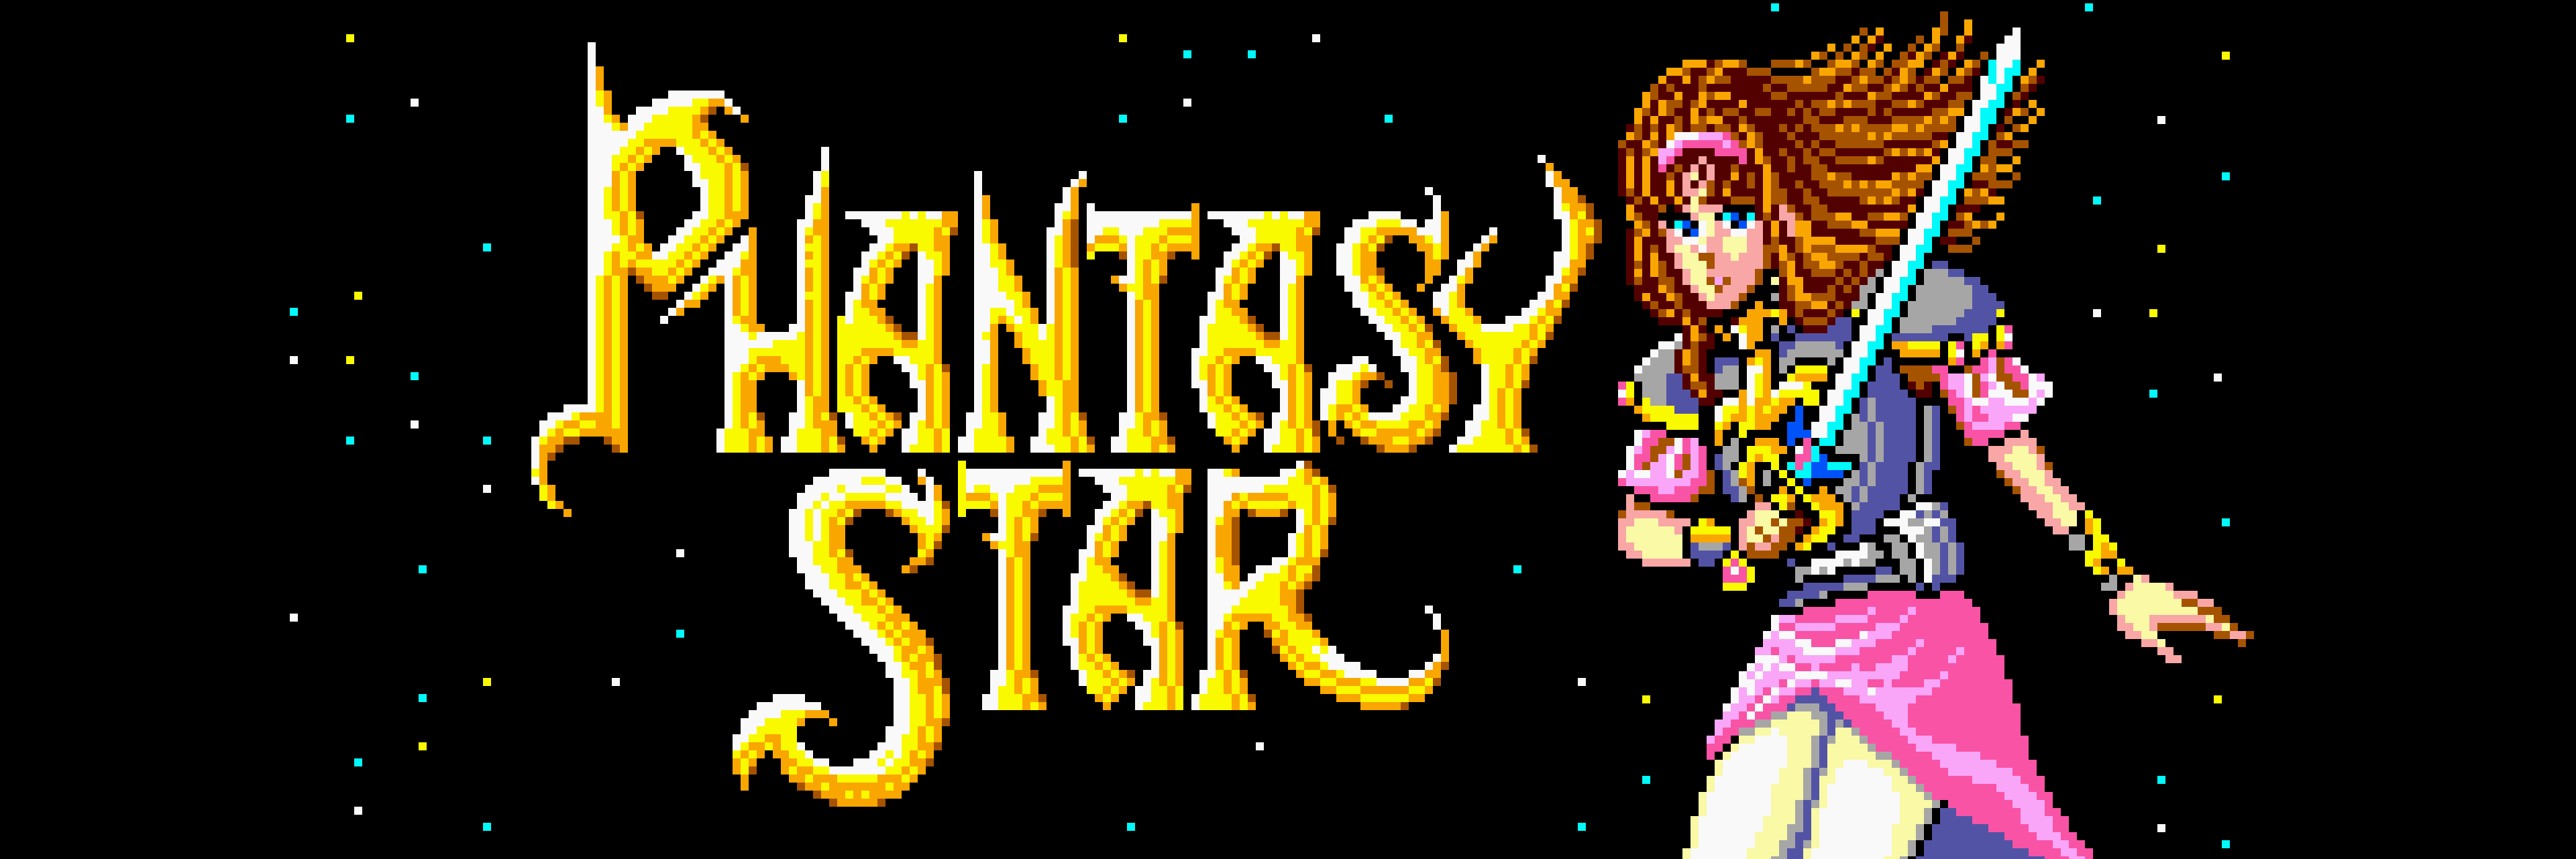 Phantasy Star, which featured Tower Theme.